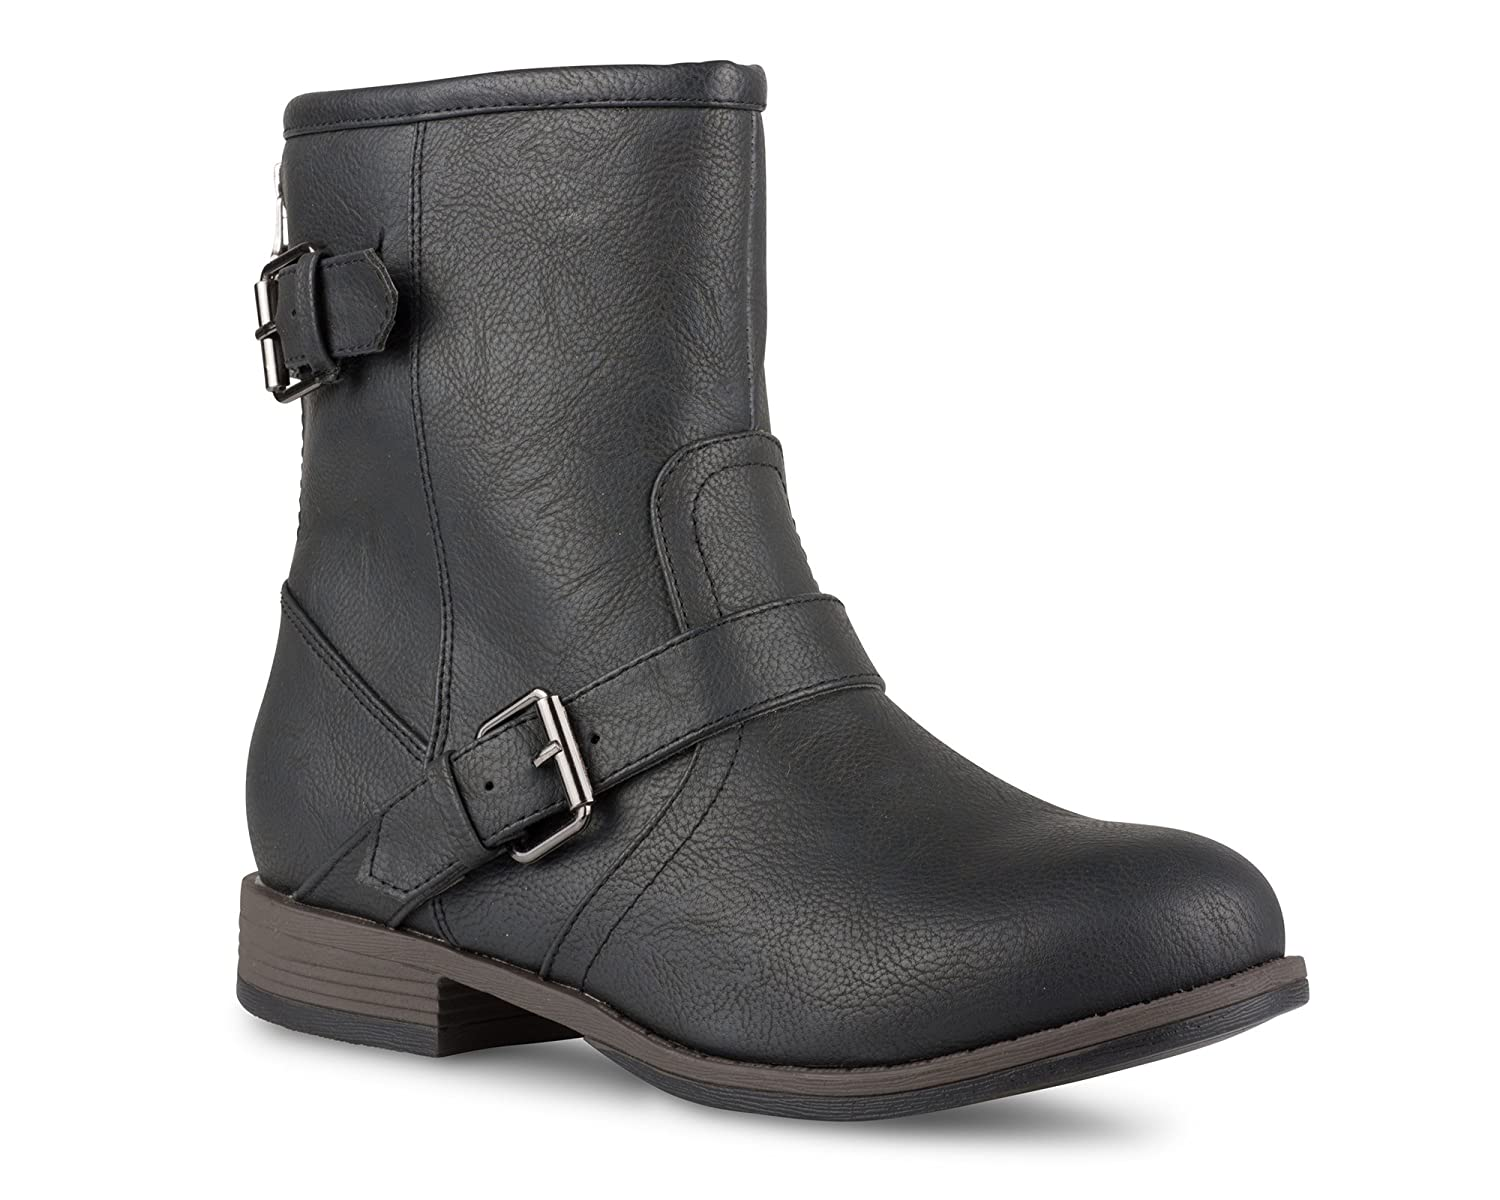 Twisted Womens Amira Short Buckle Strap Zip-Up Motorcycle Boot